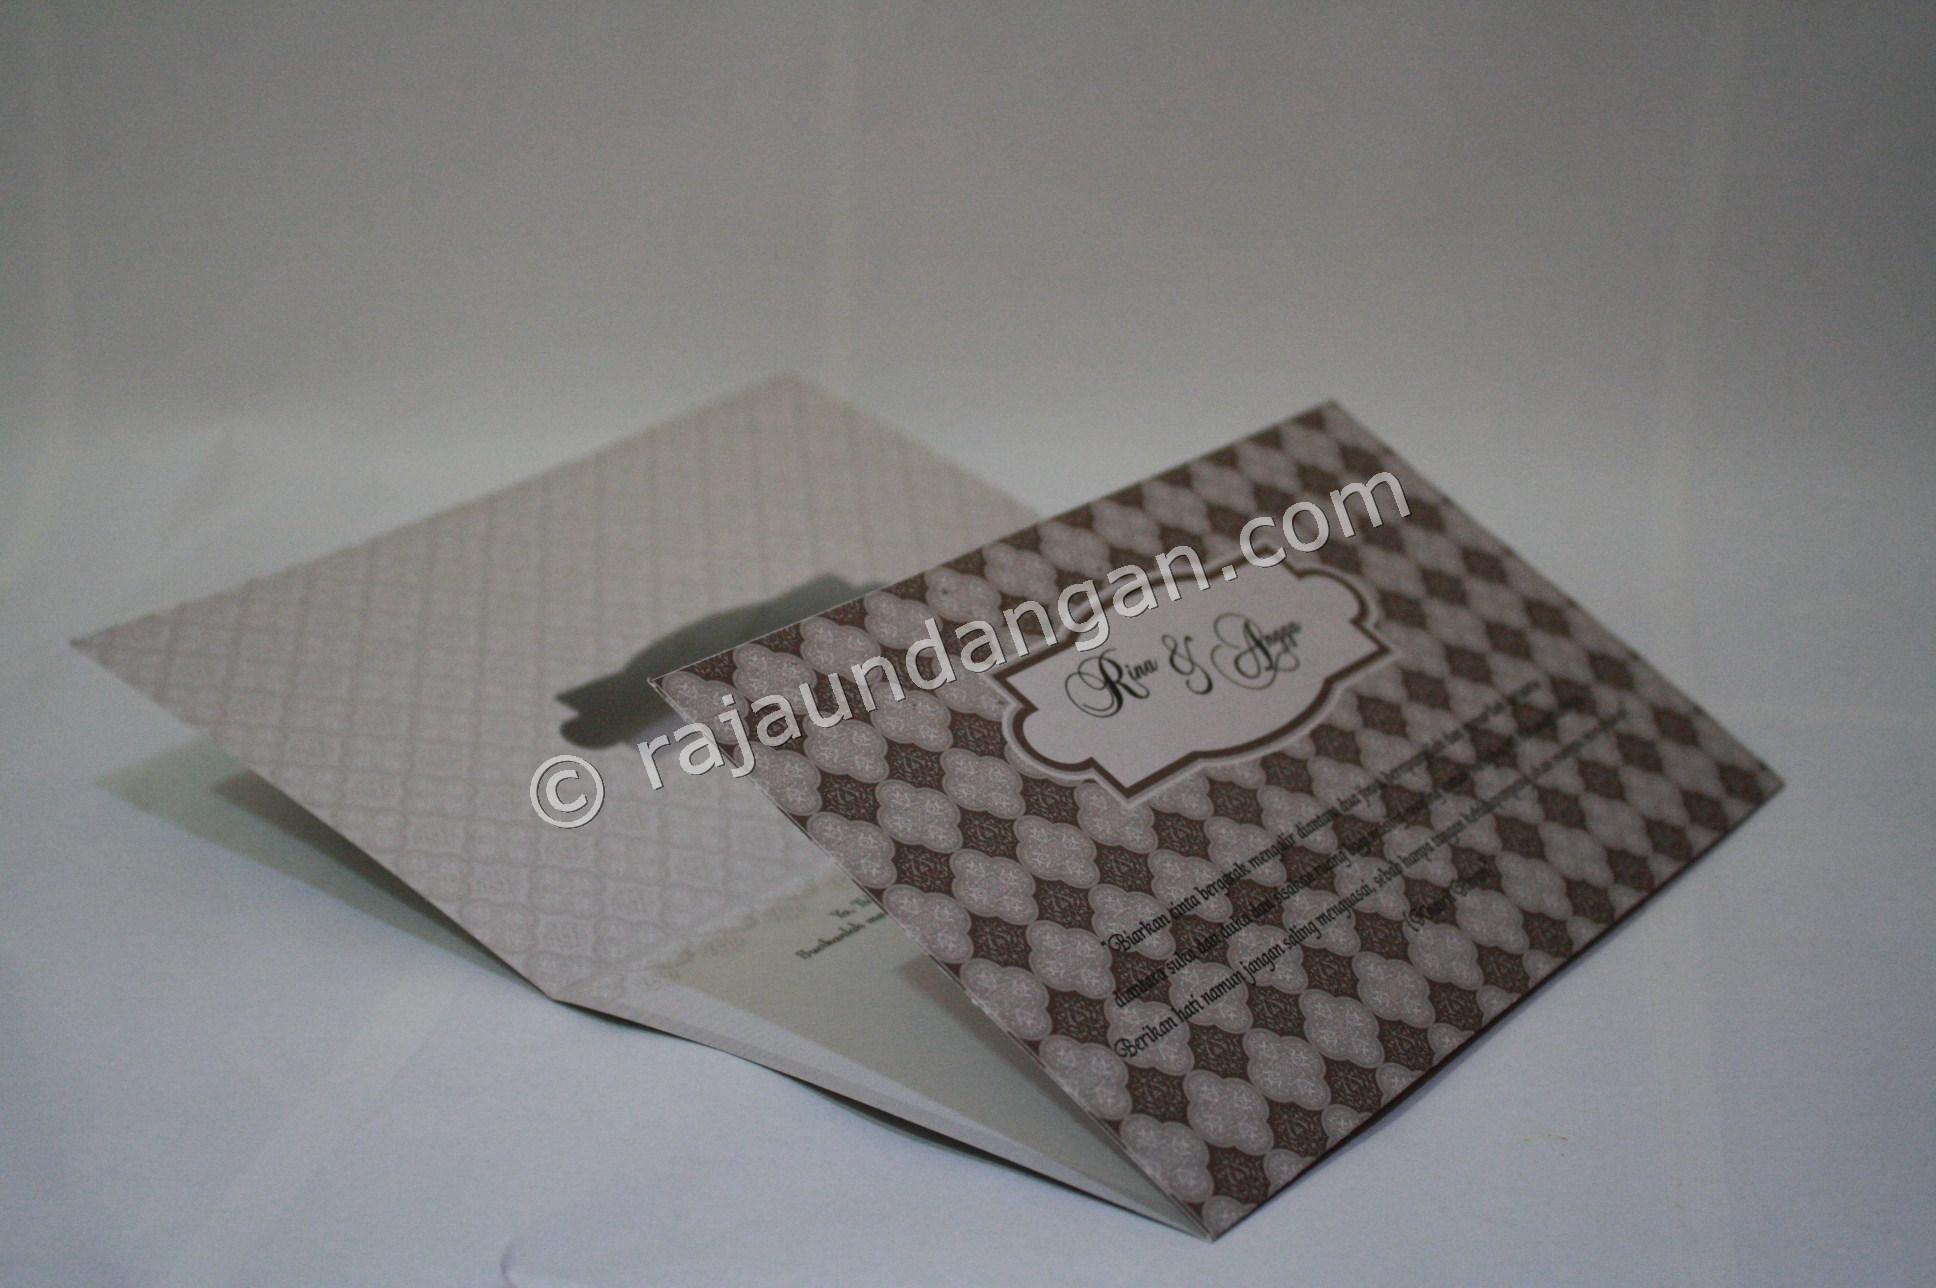 Undangan Pernikahan Softcover Lia dan Doni 4 - Percetakan Wedding Invitations Simple dan Elegan di Sawunggaling